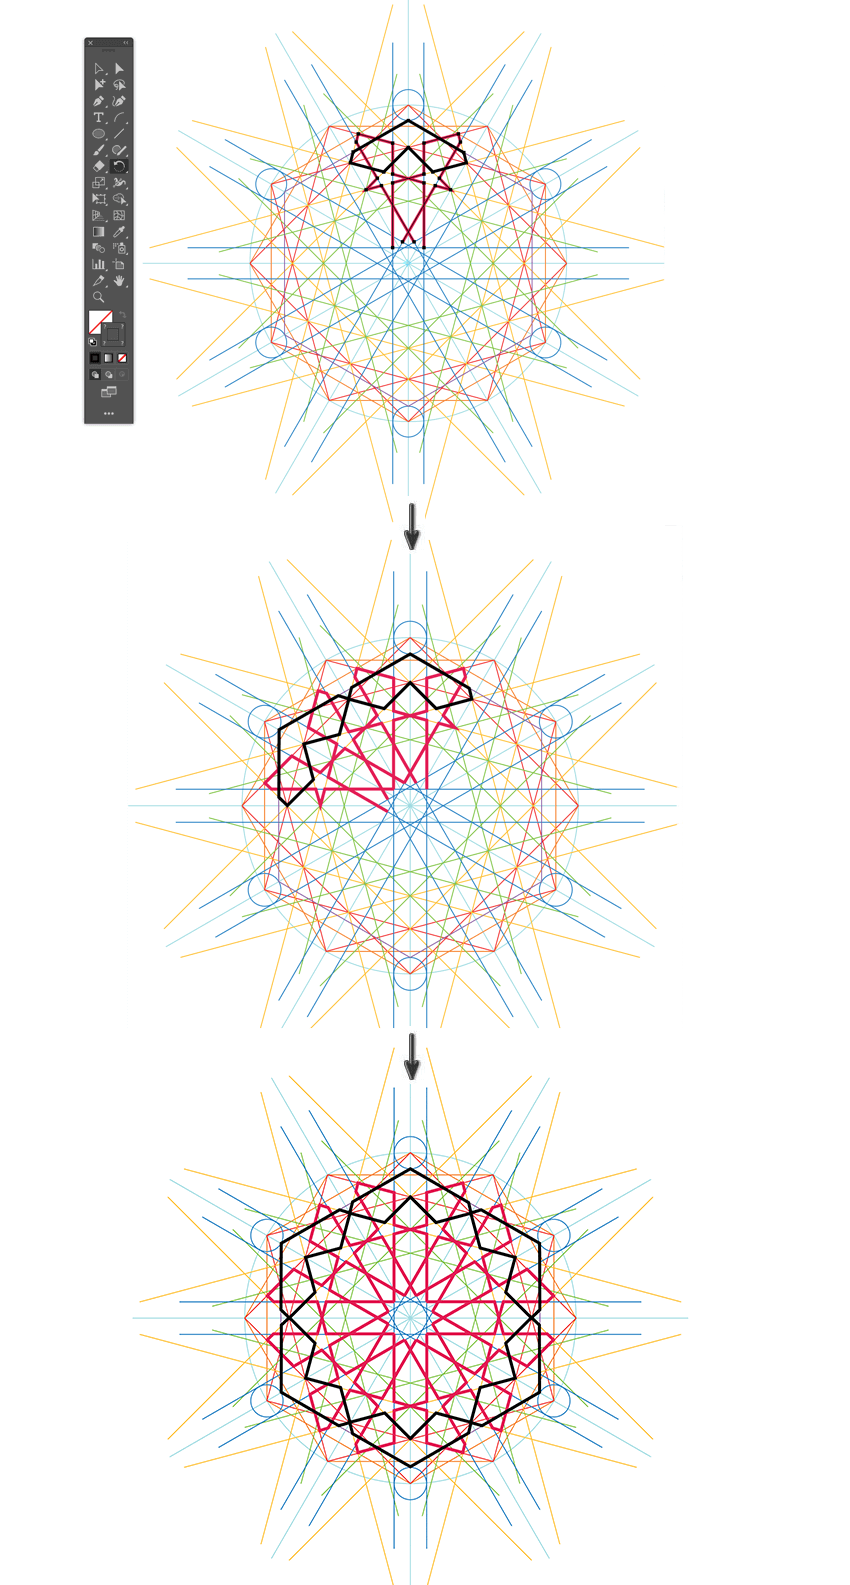 How to create repeating pattern in Illustrator using rotate tool